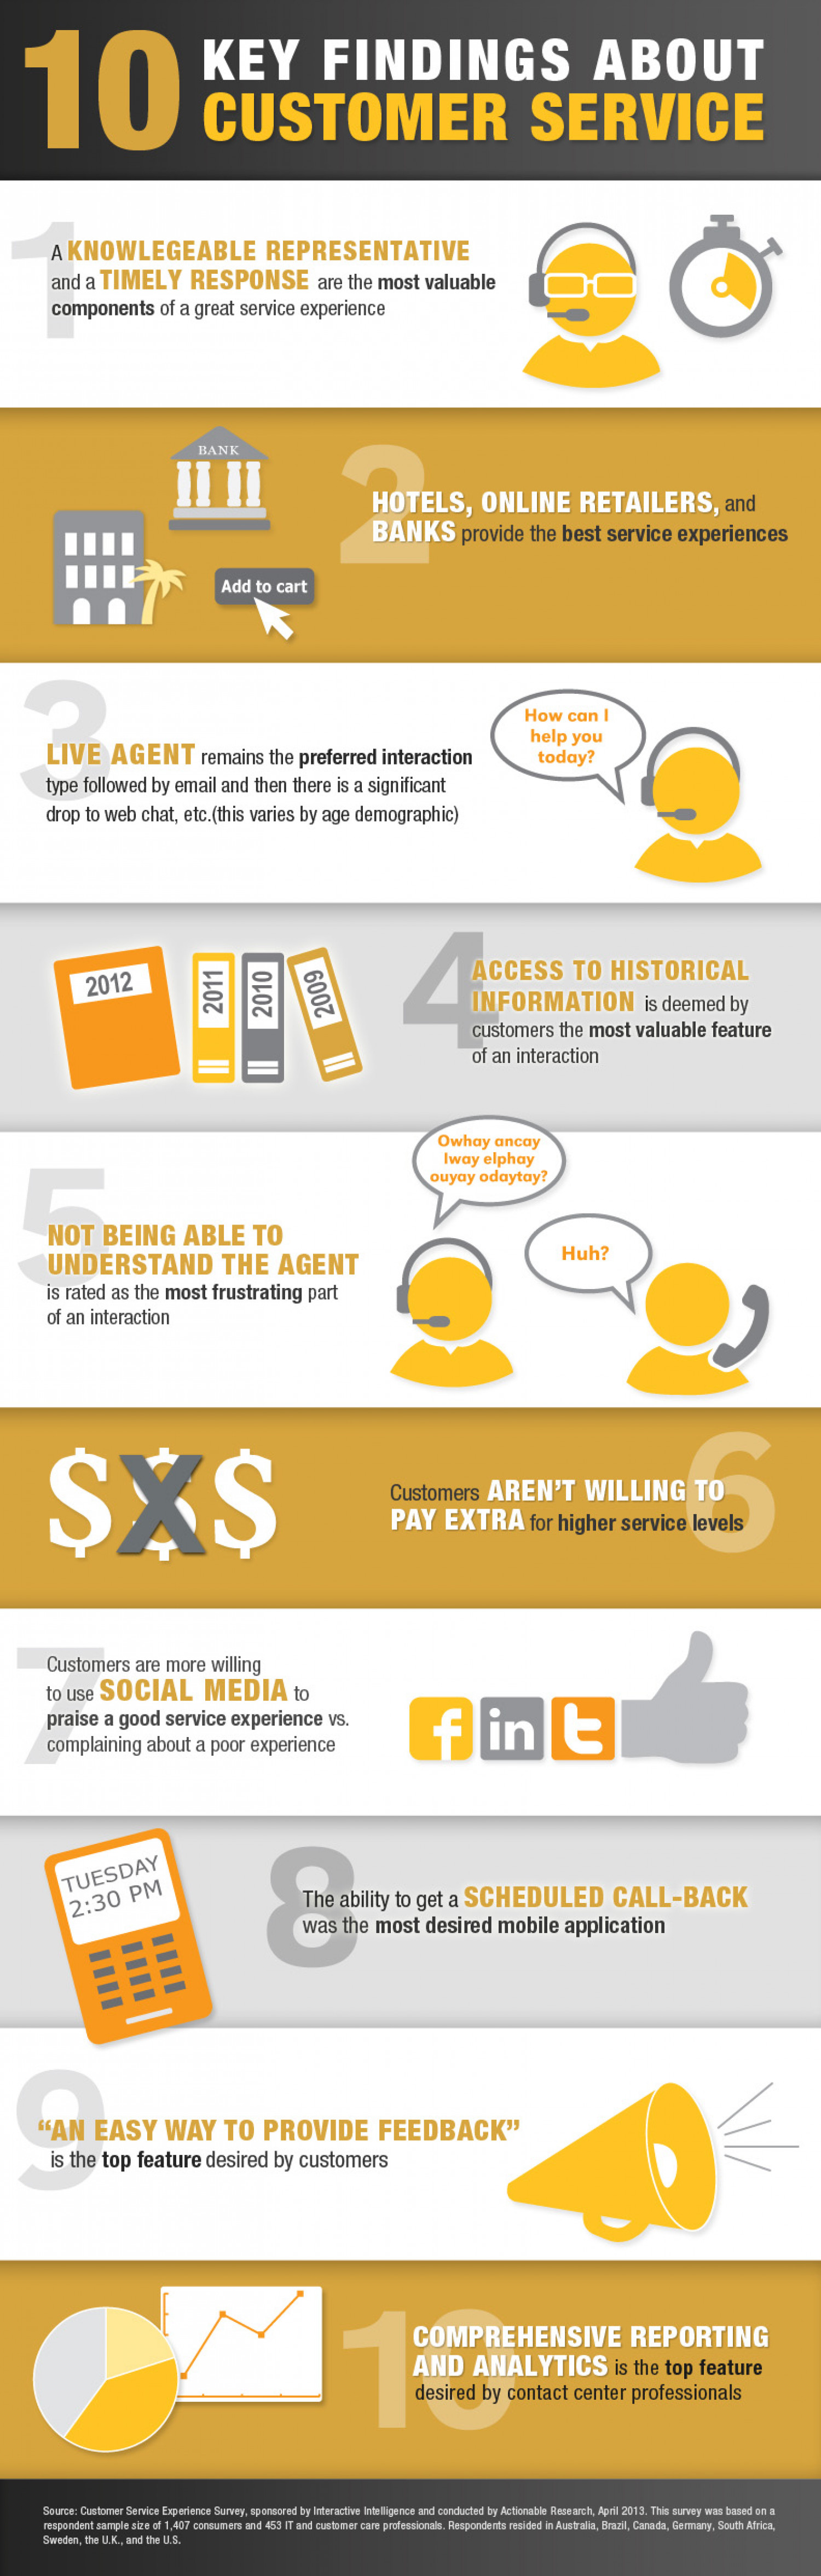 10 Key Findings About Customer Service – Interactive Intelligence Infographic